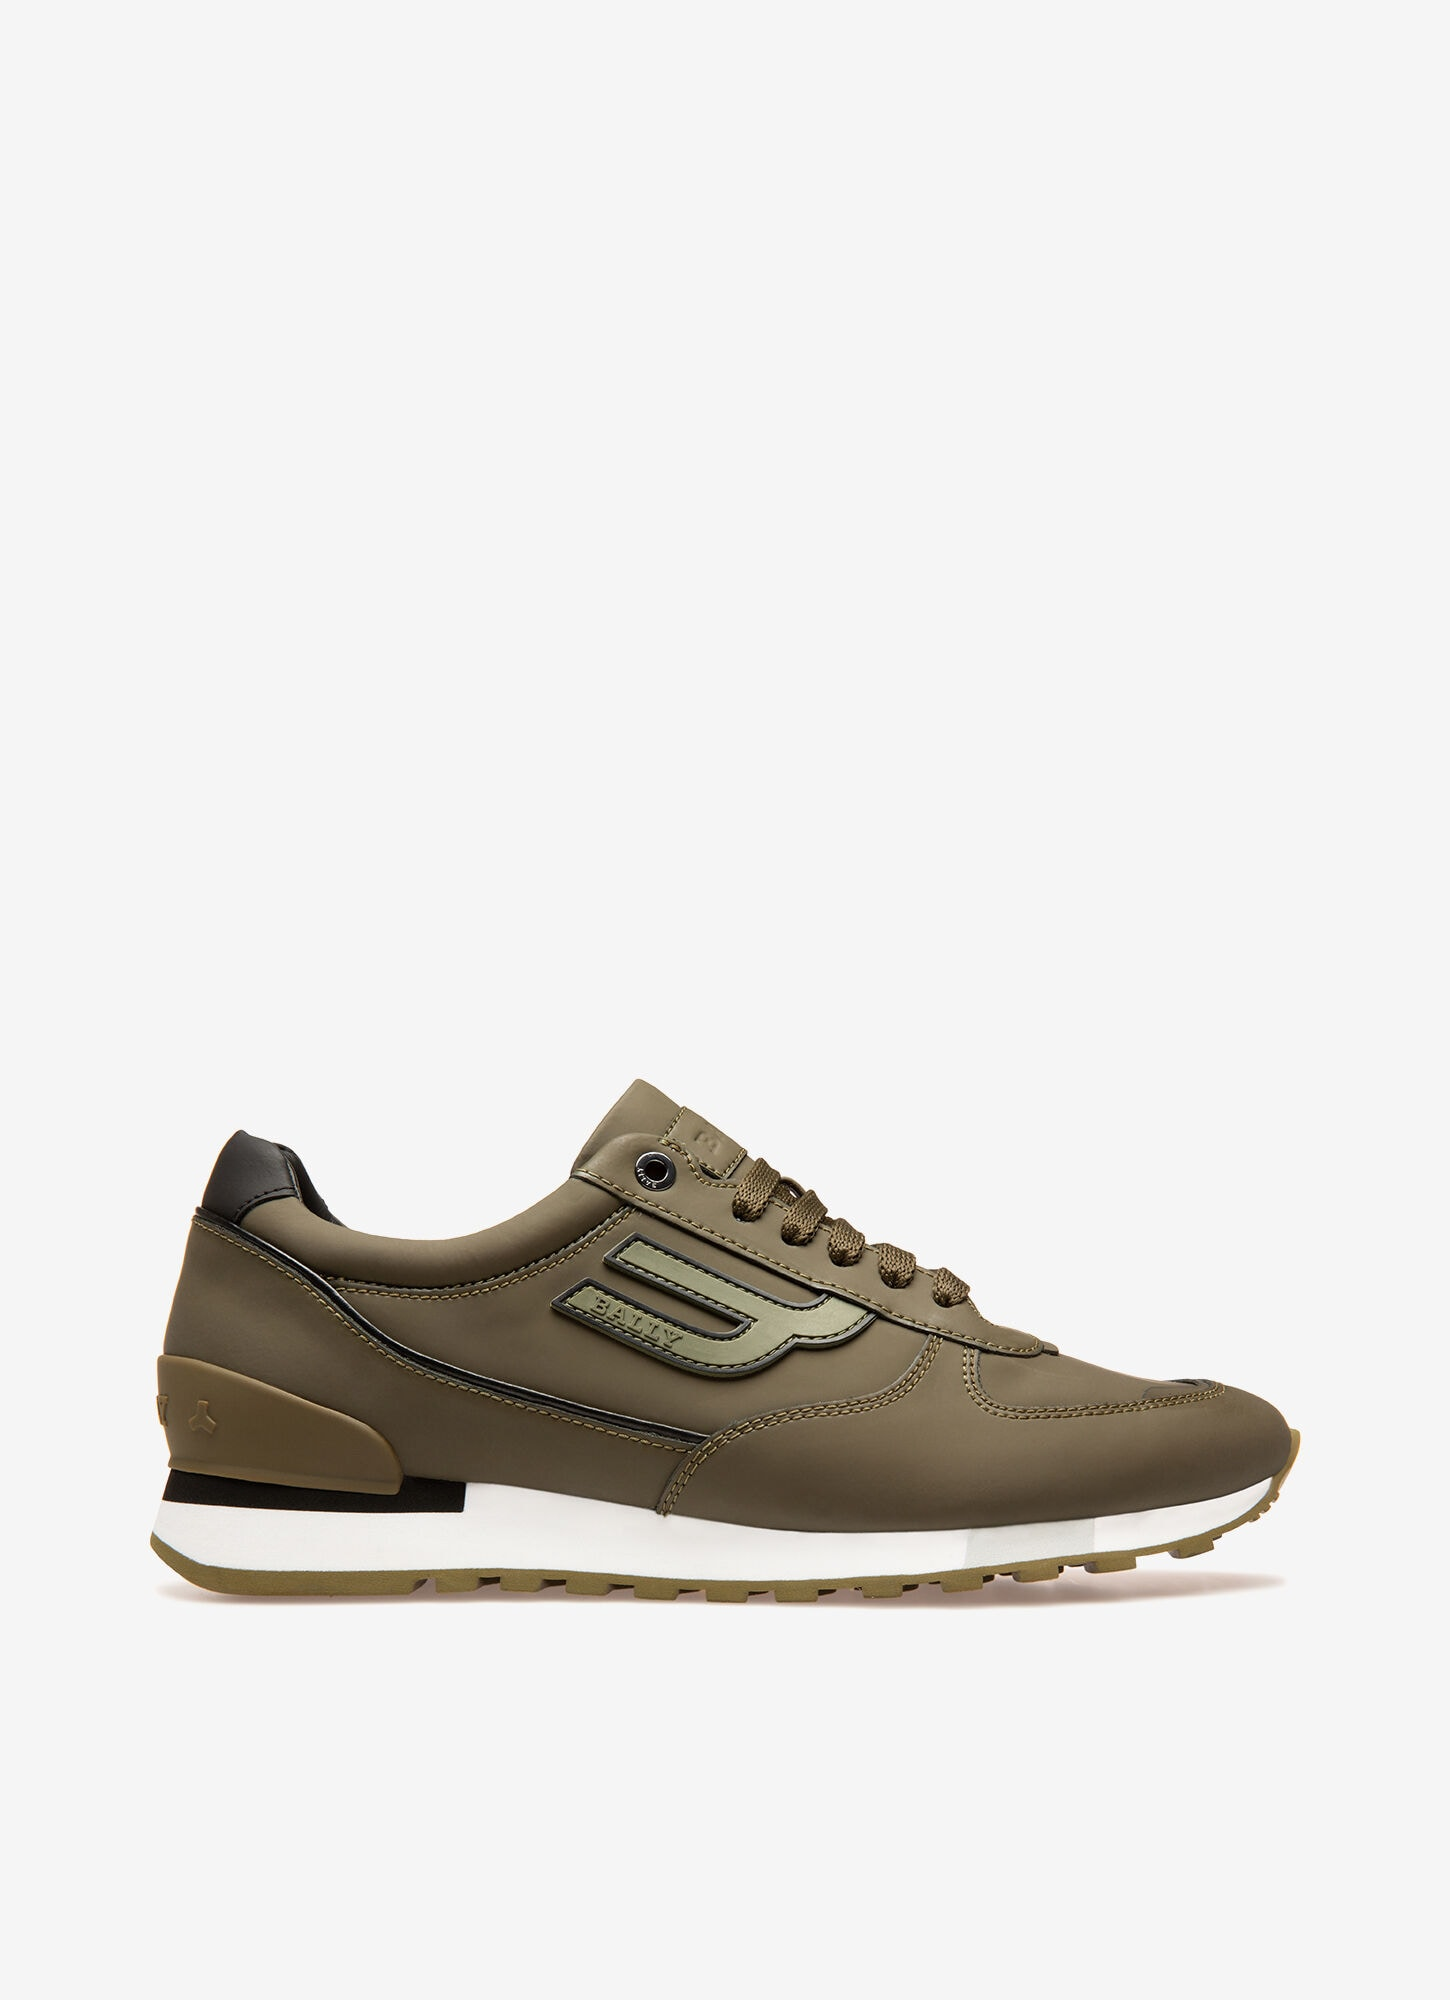 Mens Sneakers | Dark Green Leather | Bally